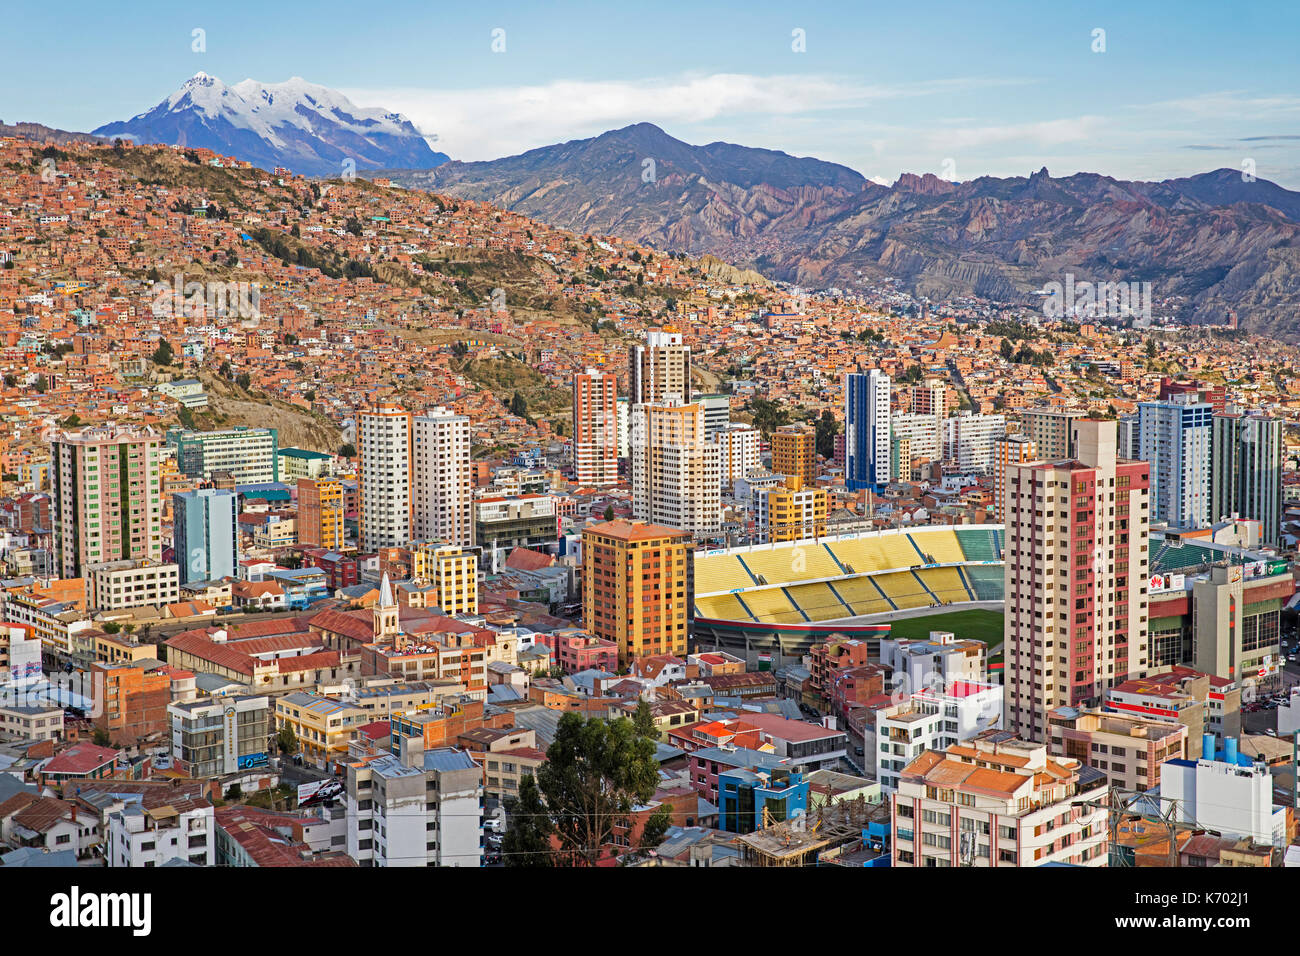 Aerial view over the city La Paz showing its business district and Estadio Hernando Siles sports stadium in the Miraflores borough, Bolivia - Stock Image